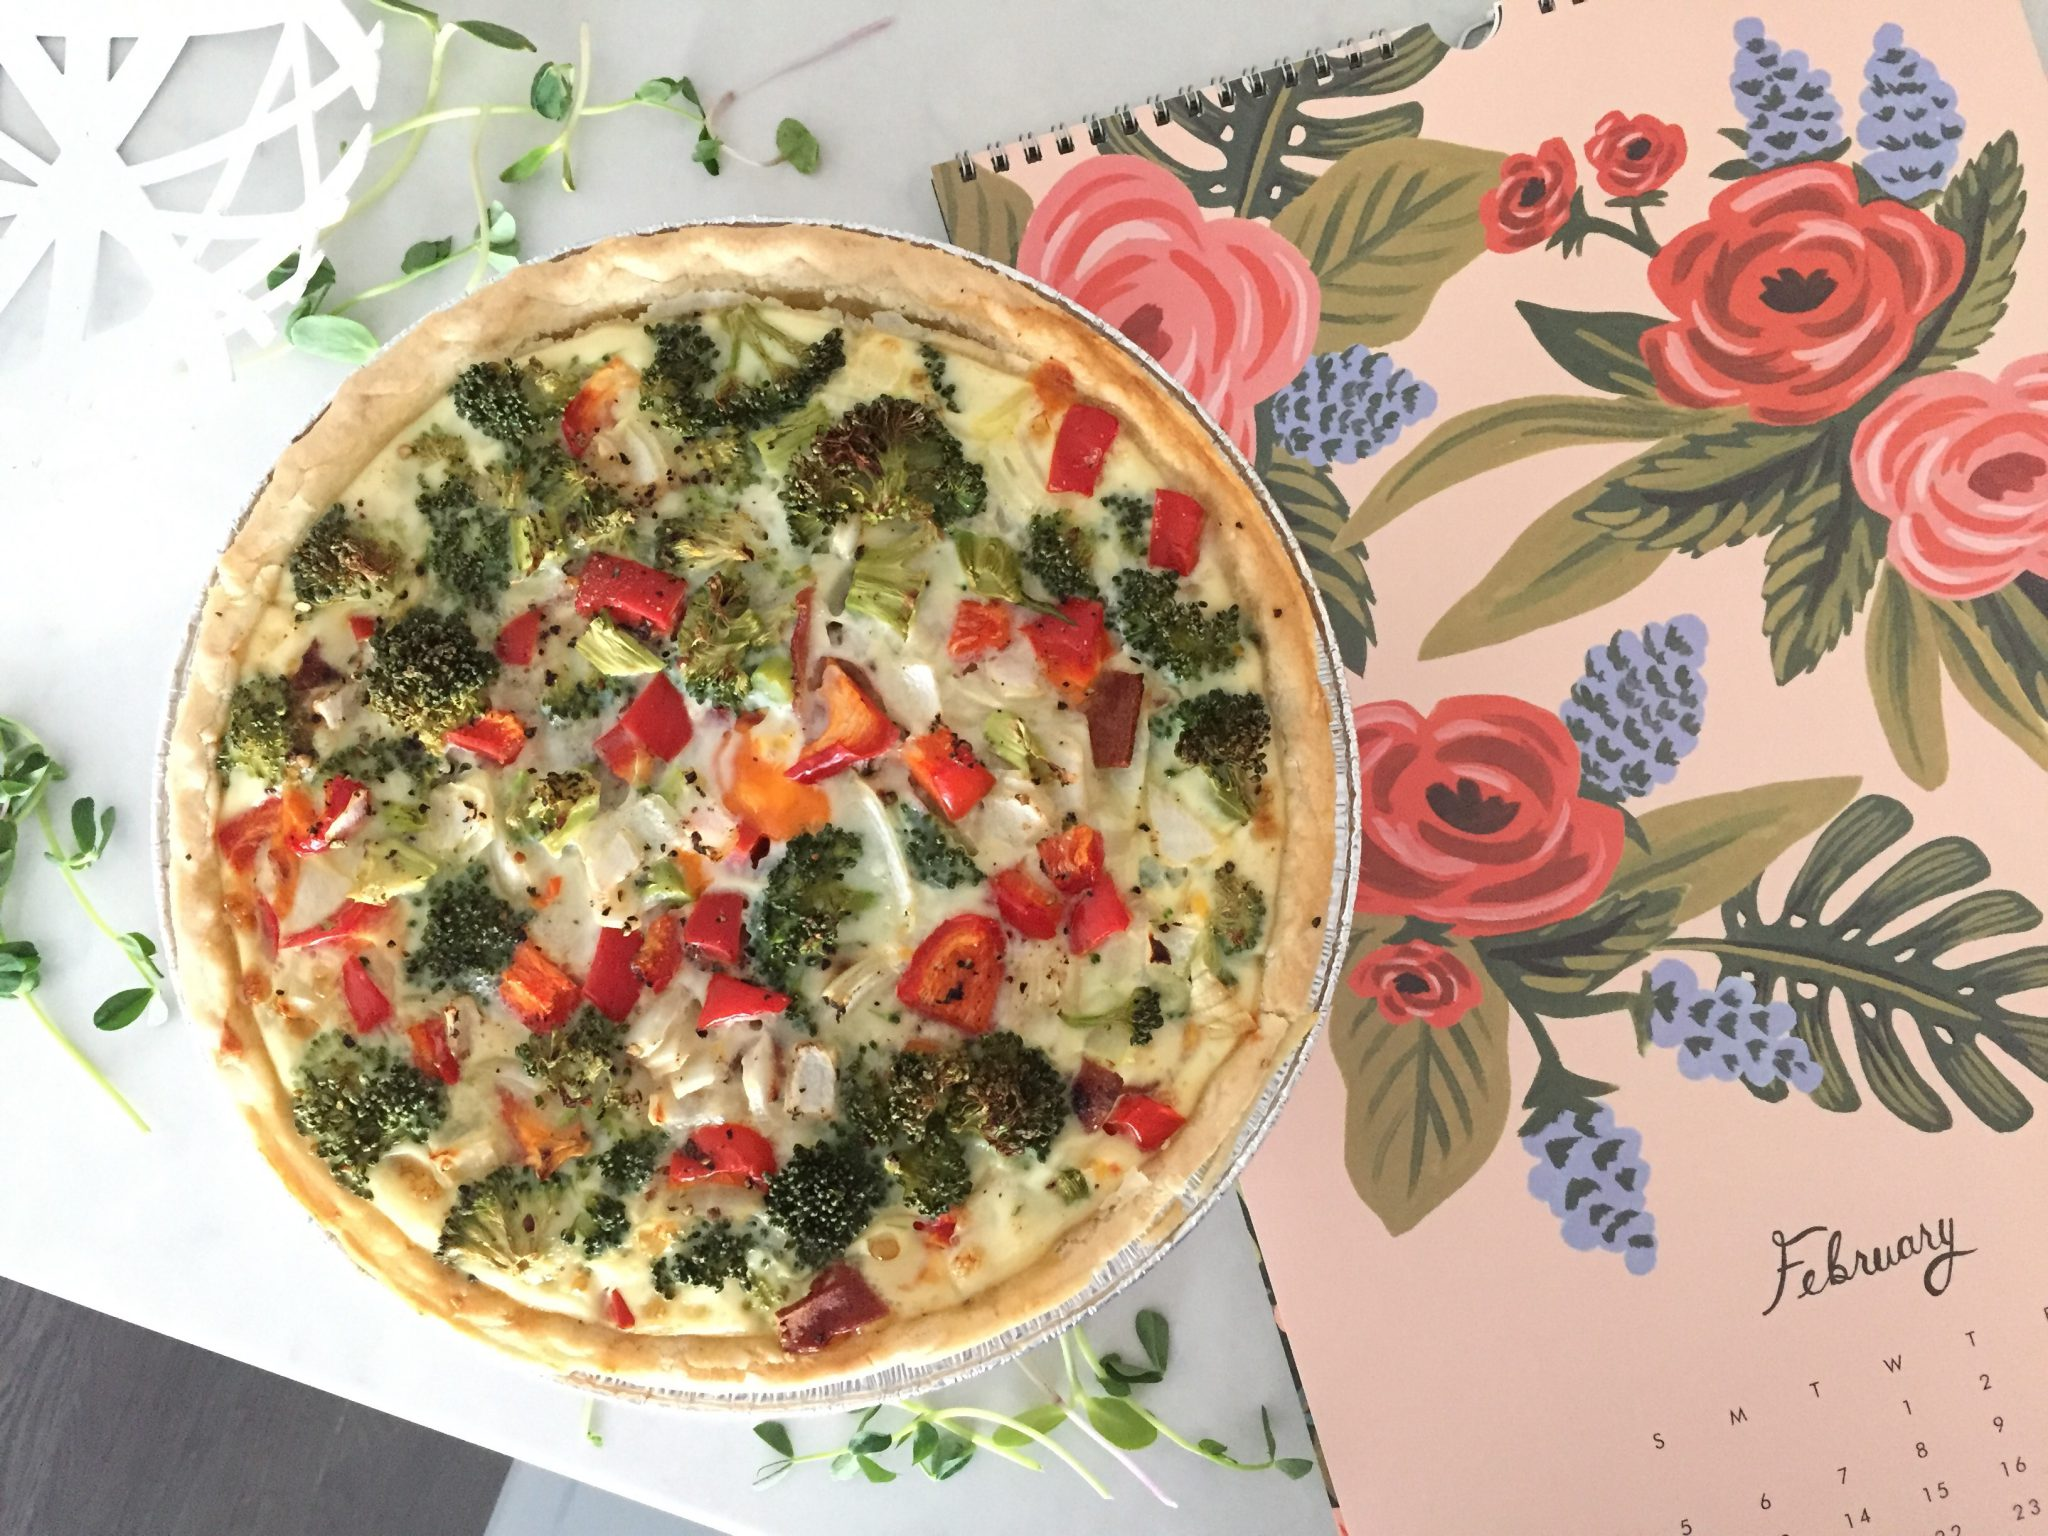 Quiche Recipe with Lots of Veggies